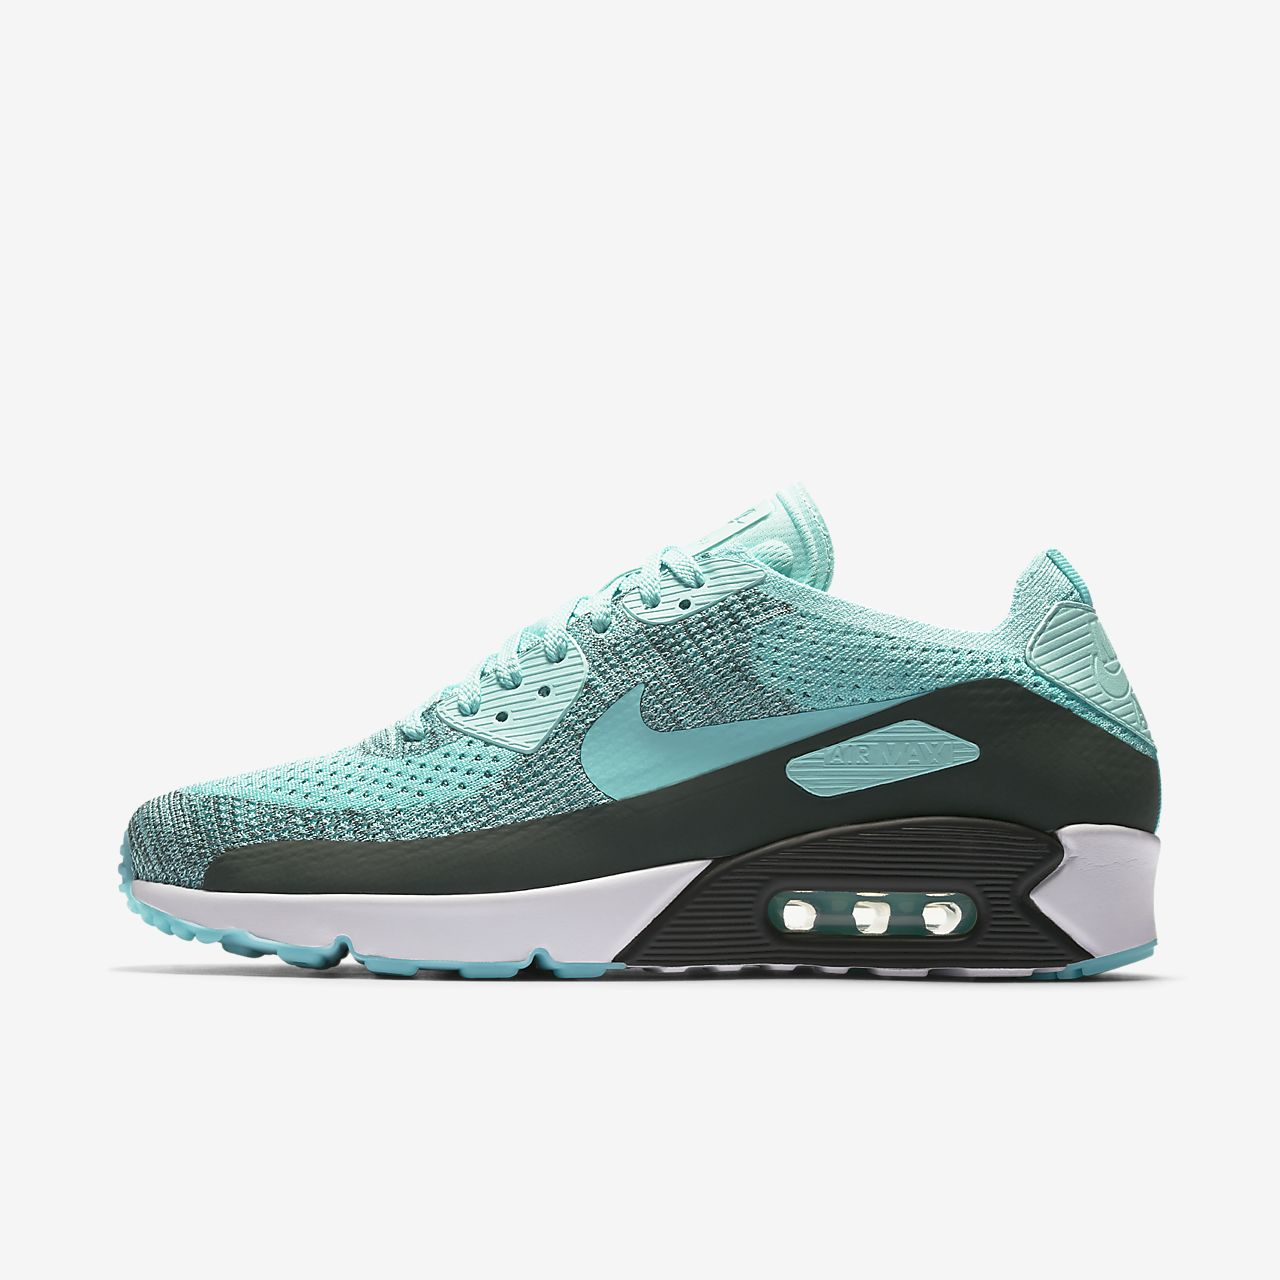 ... Chaussure Nike Air Max 90 Ultra 2.0 Flyknit pour Homme